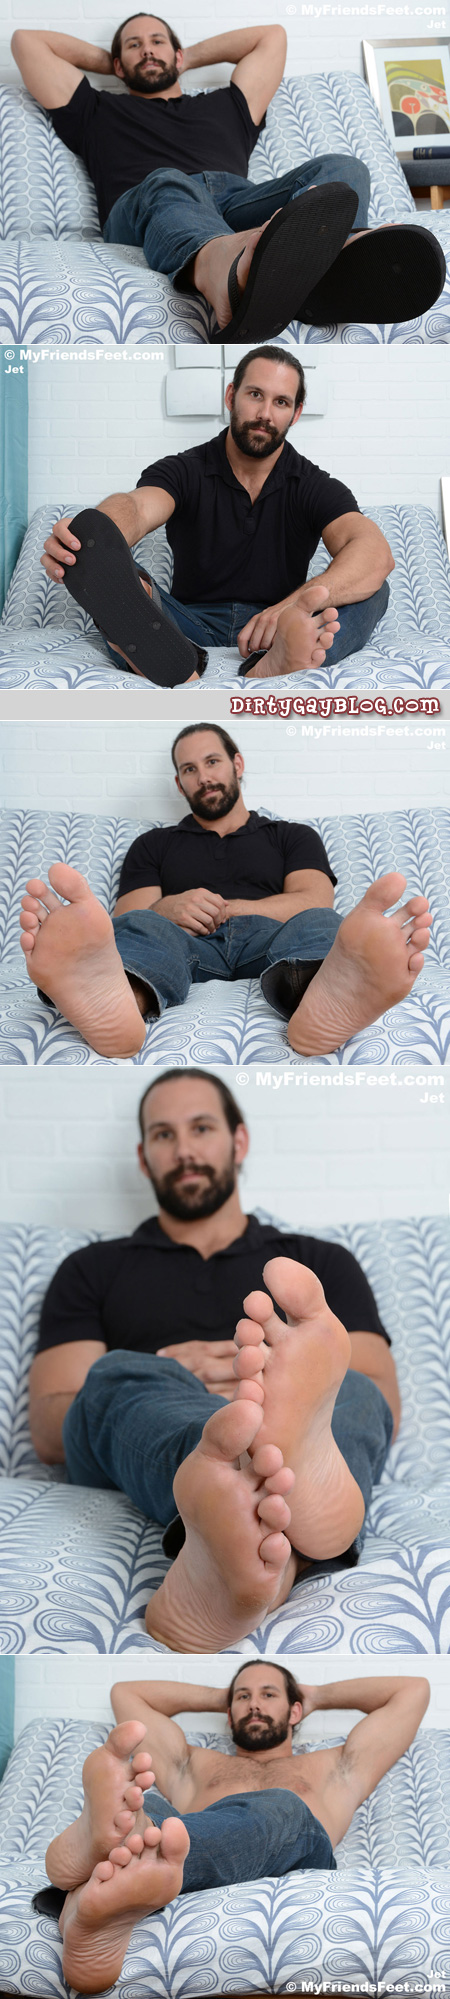 Hairy muscle hunk showing off his big bare feet.